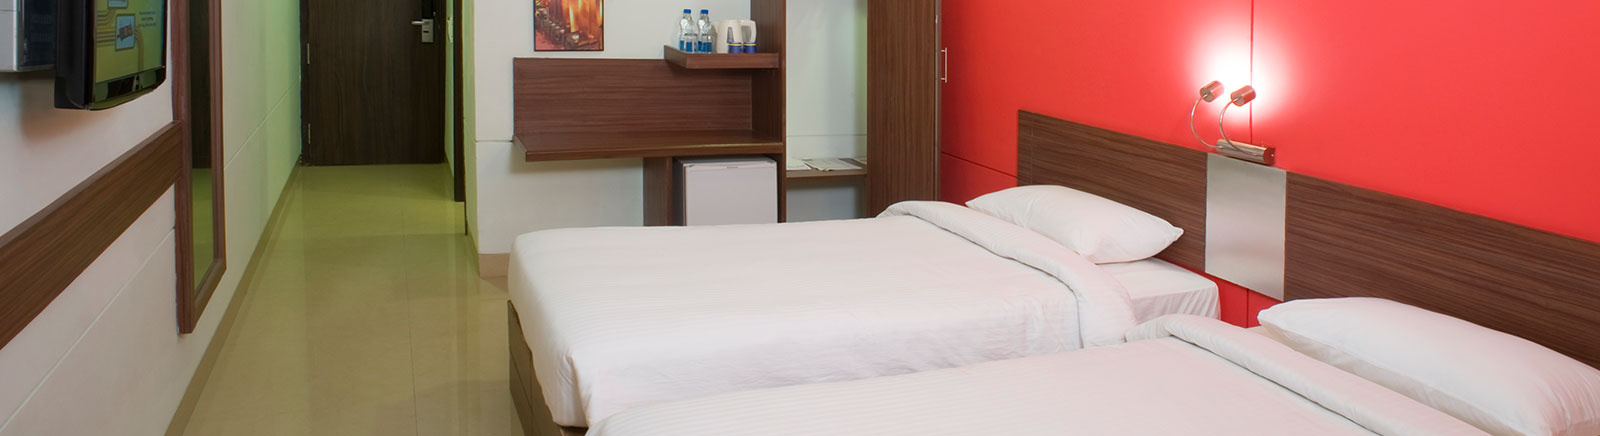 Rooms of Ginger Bangalore IRR